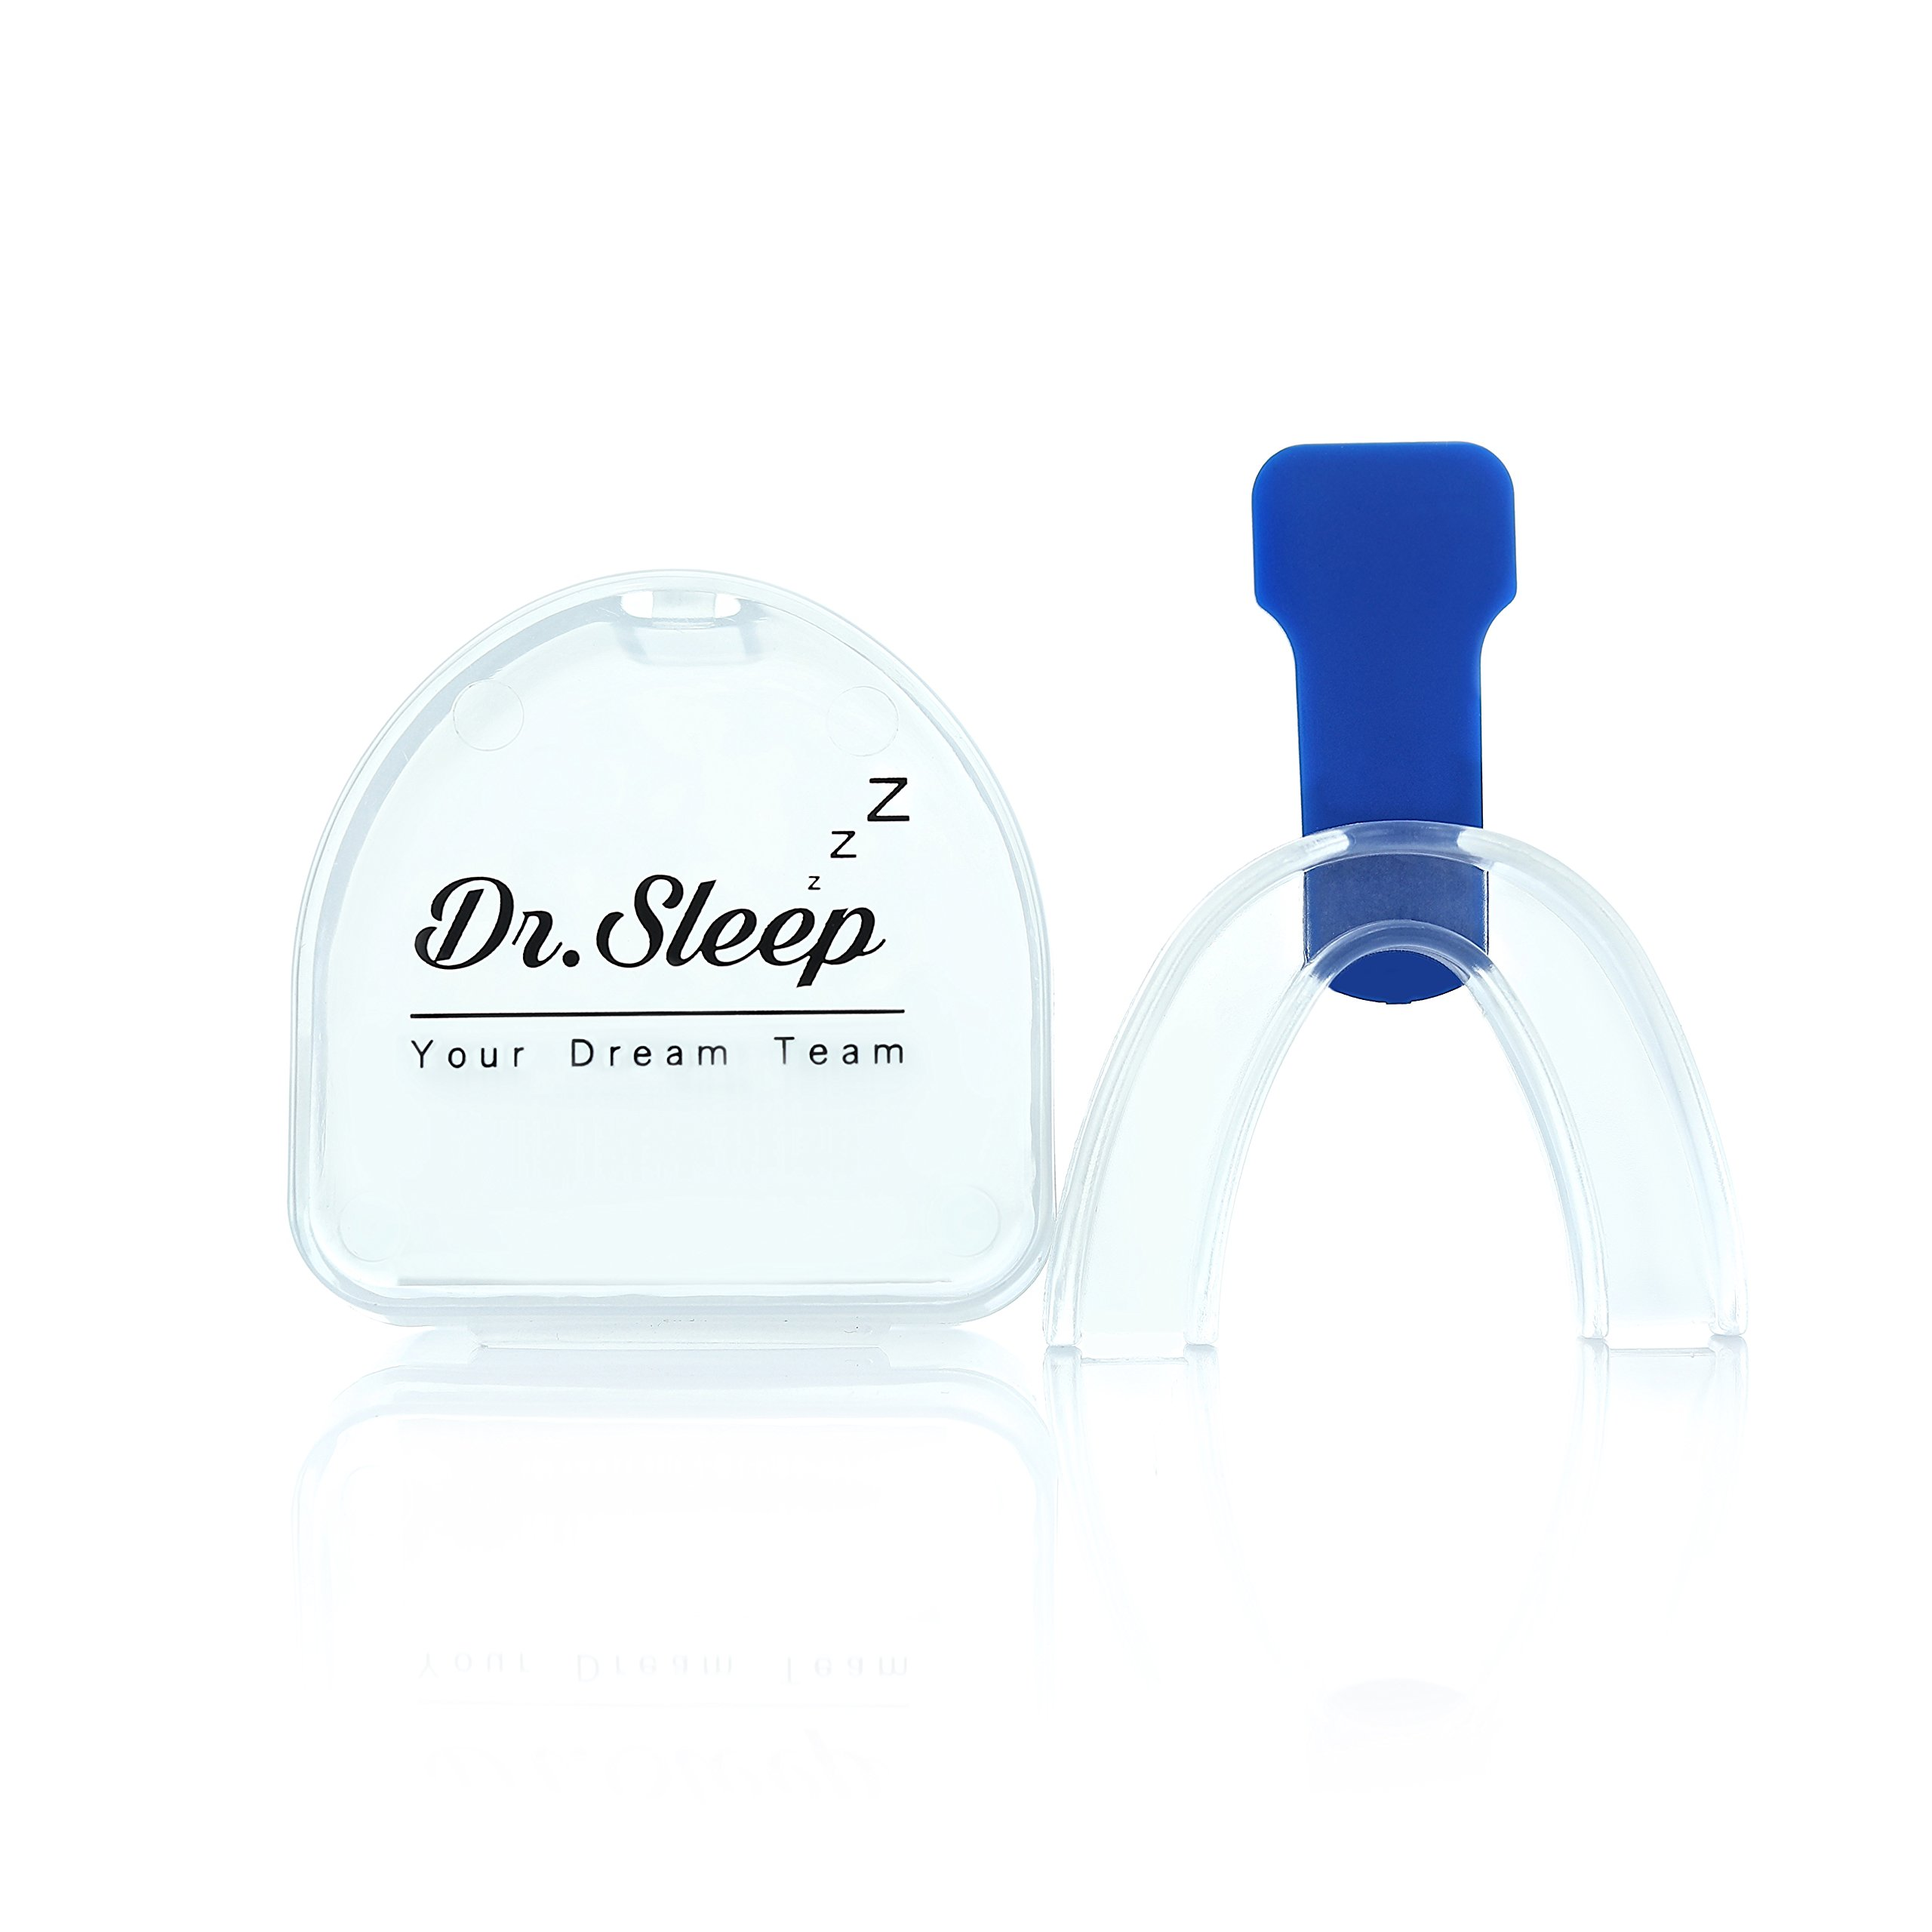 Snore Stopper Mouthpiece - Sleep Aid Custom Night Mouth Guard Bruxism Mouthpiece